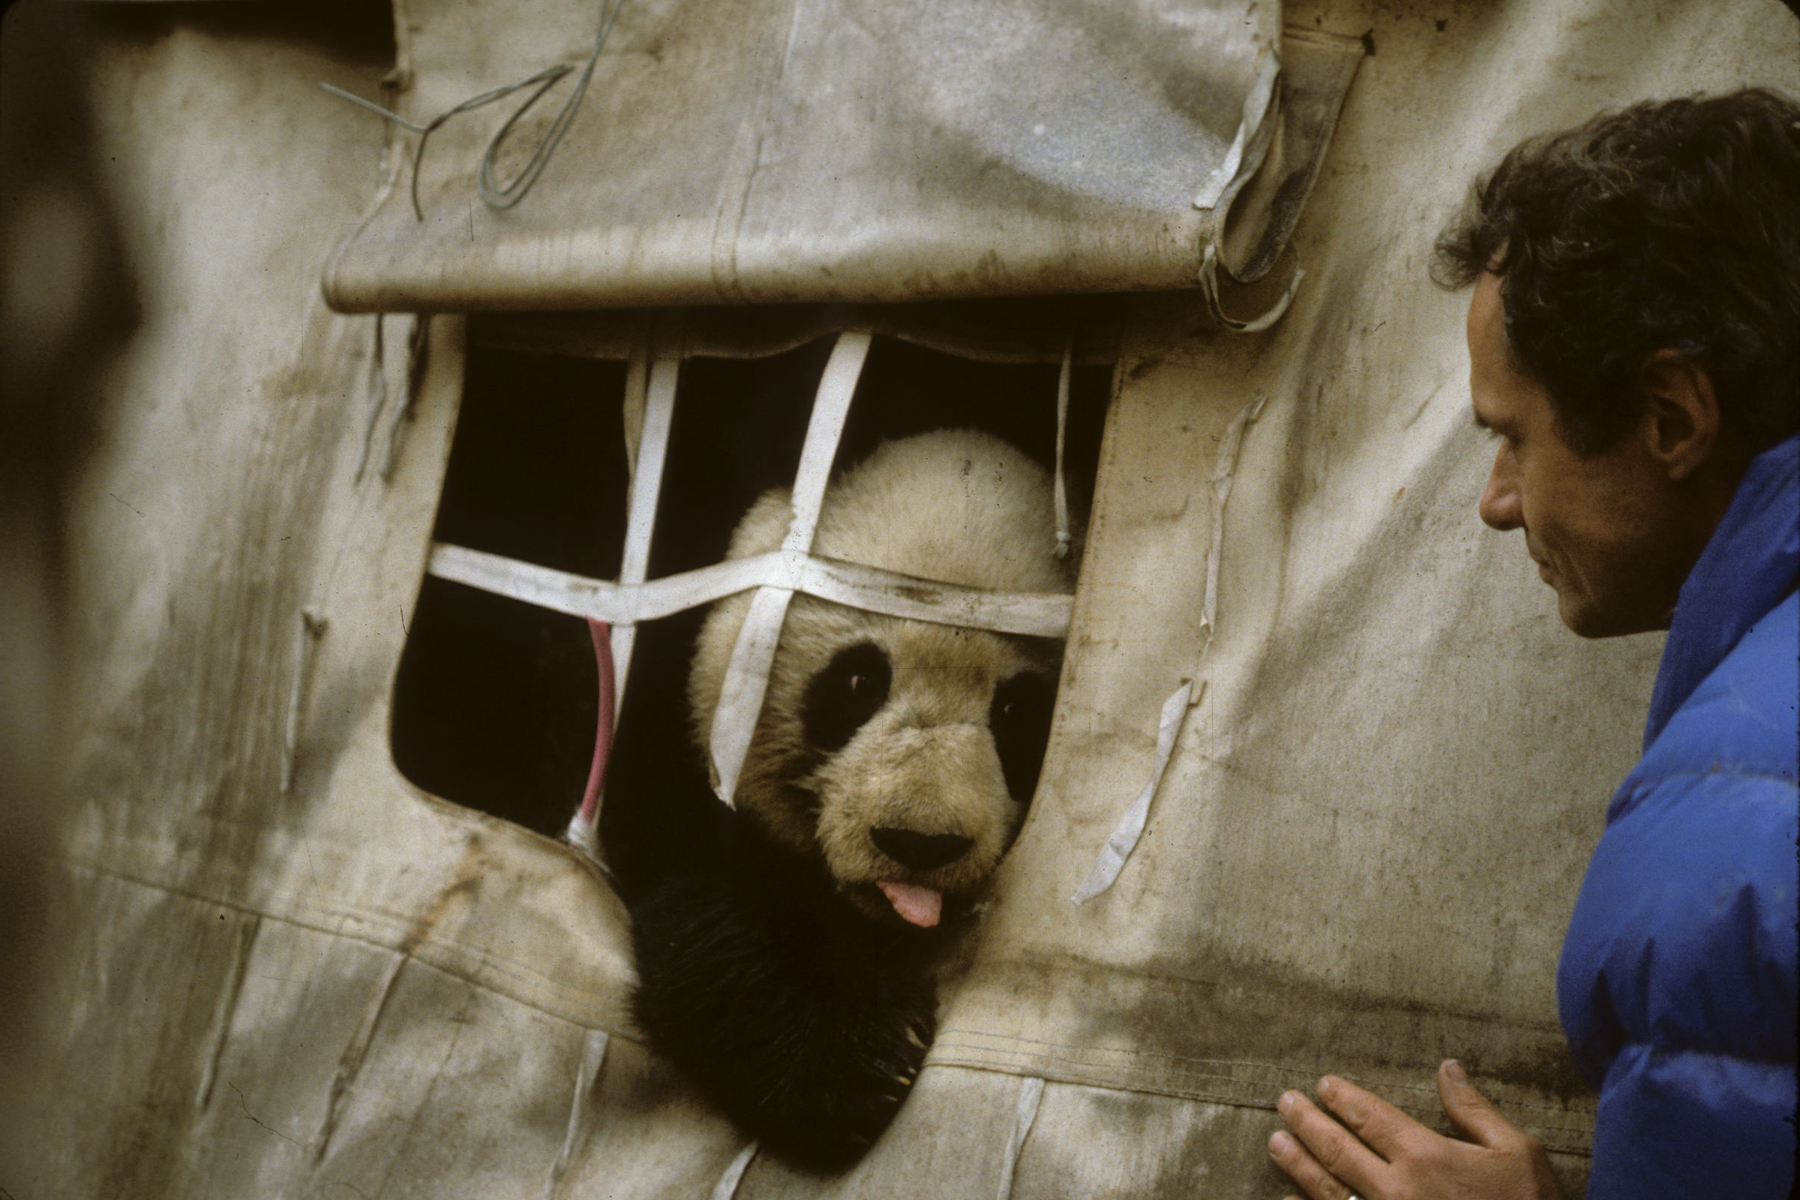 George Schaller being visited by Zhen Zhen, a curious wild giant panda, at his camp in the forests of the Wolong Nature Reserve in Western China.